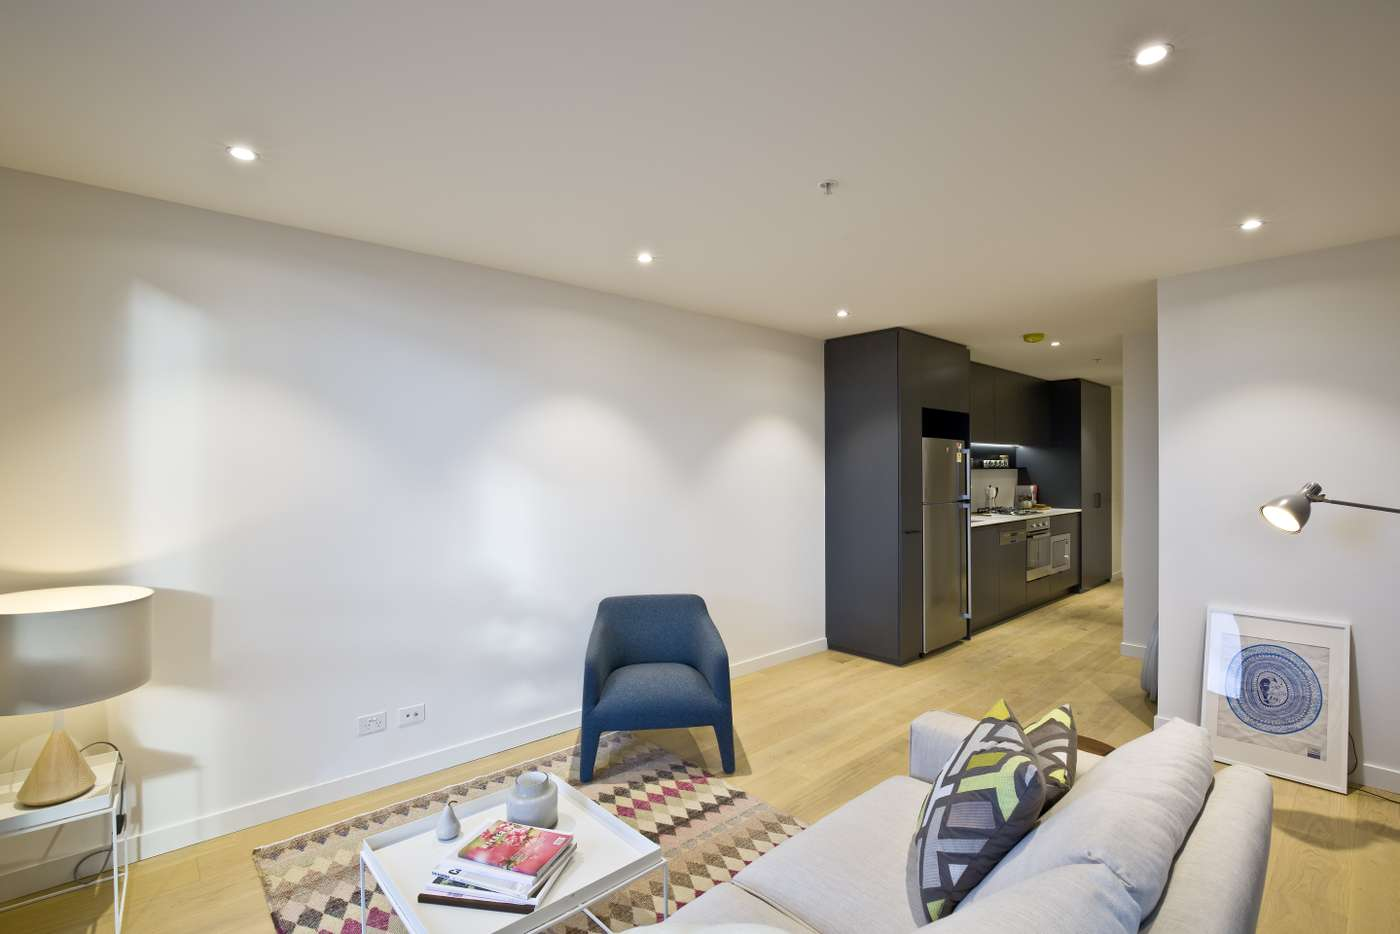 Main view of Homely apartment listing, 1602D/21 Robert Street, Collingwood VIC 3066